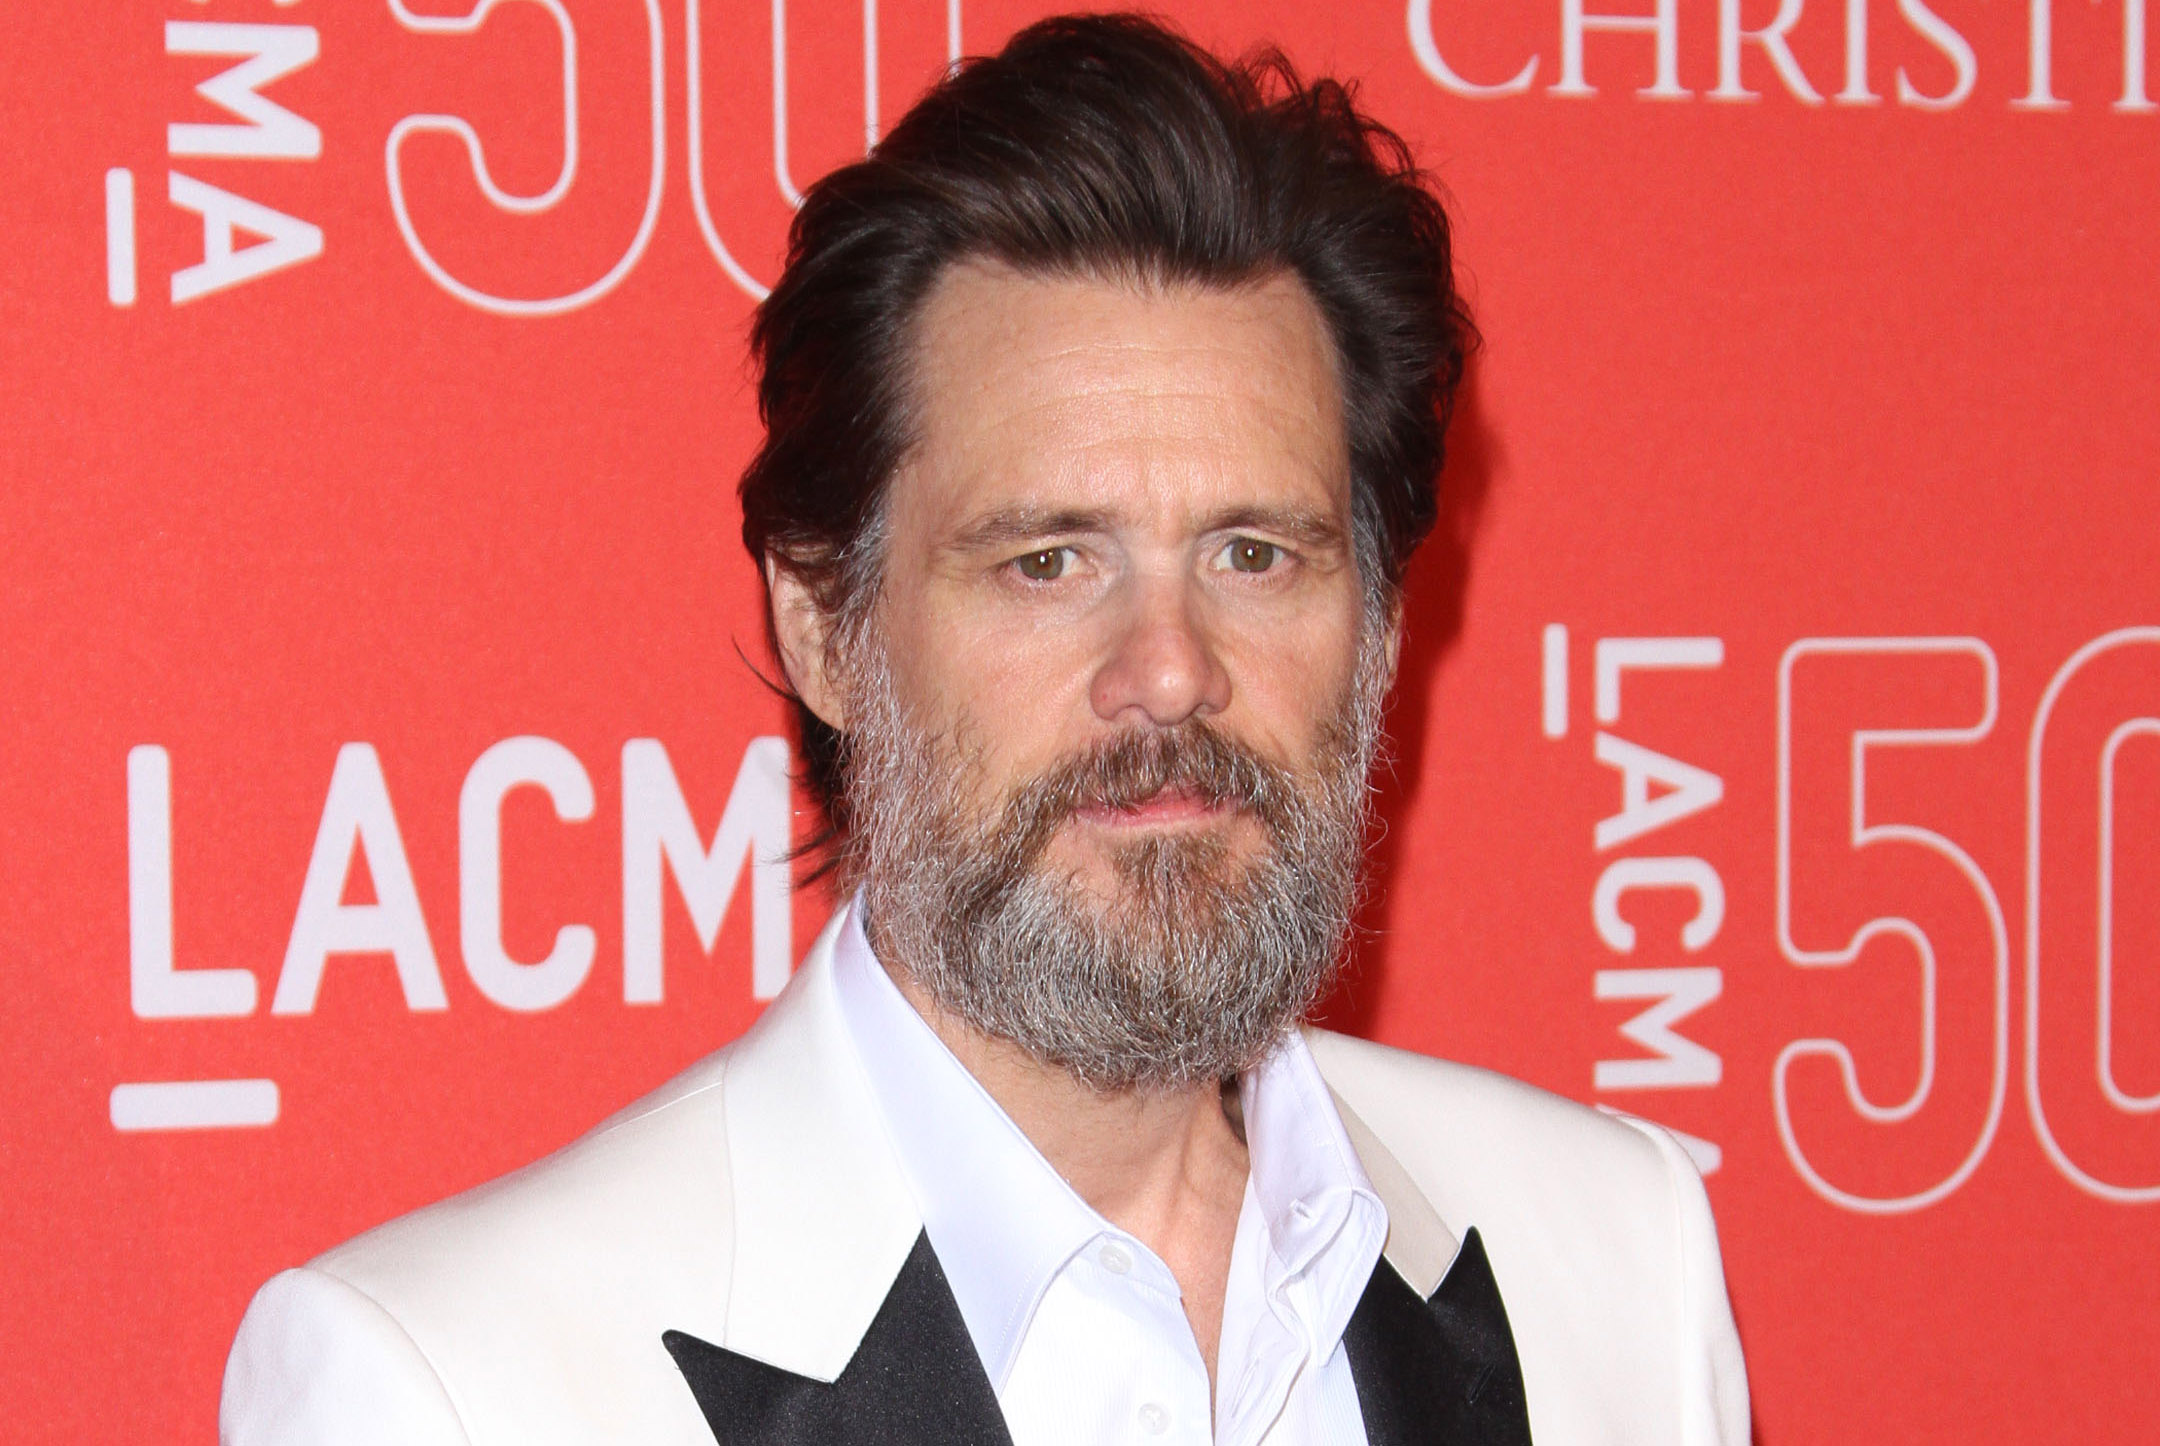 Jim Carrey has released a statement after the tragic death of his on ... Jim Carrey